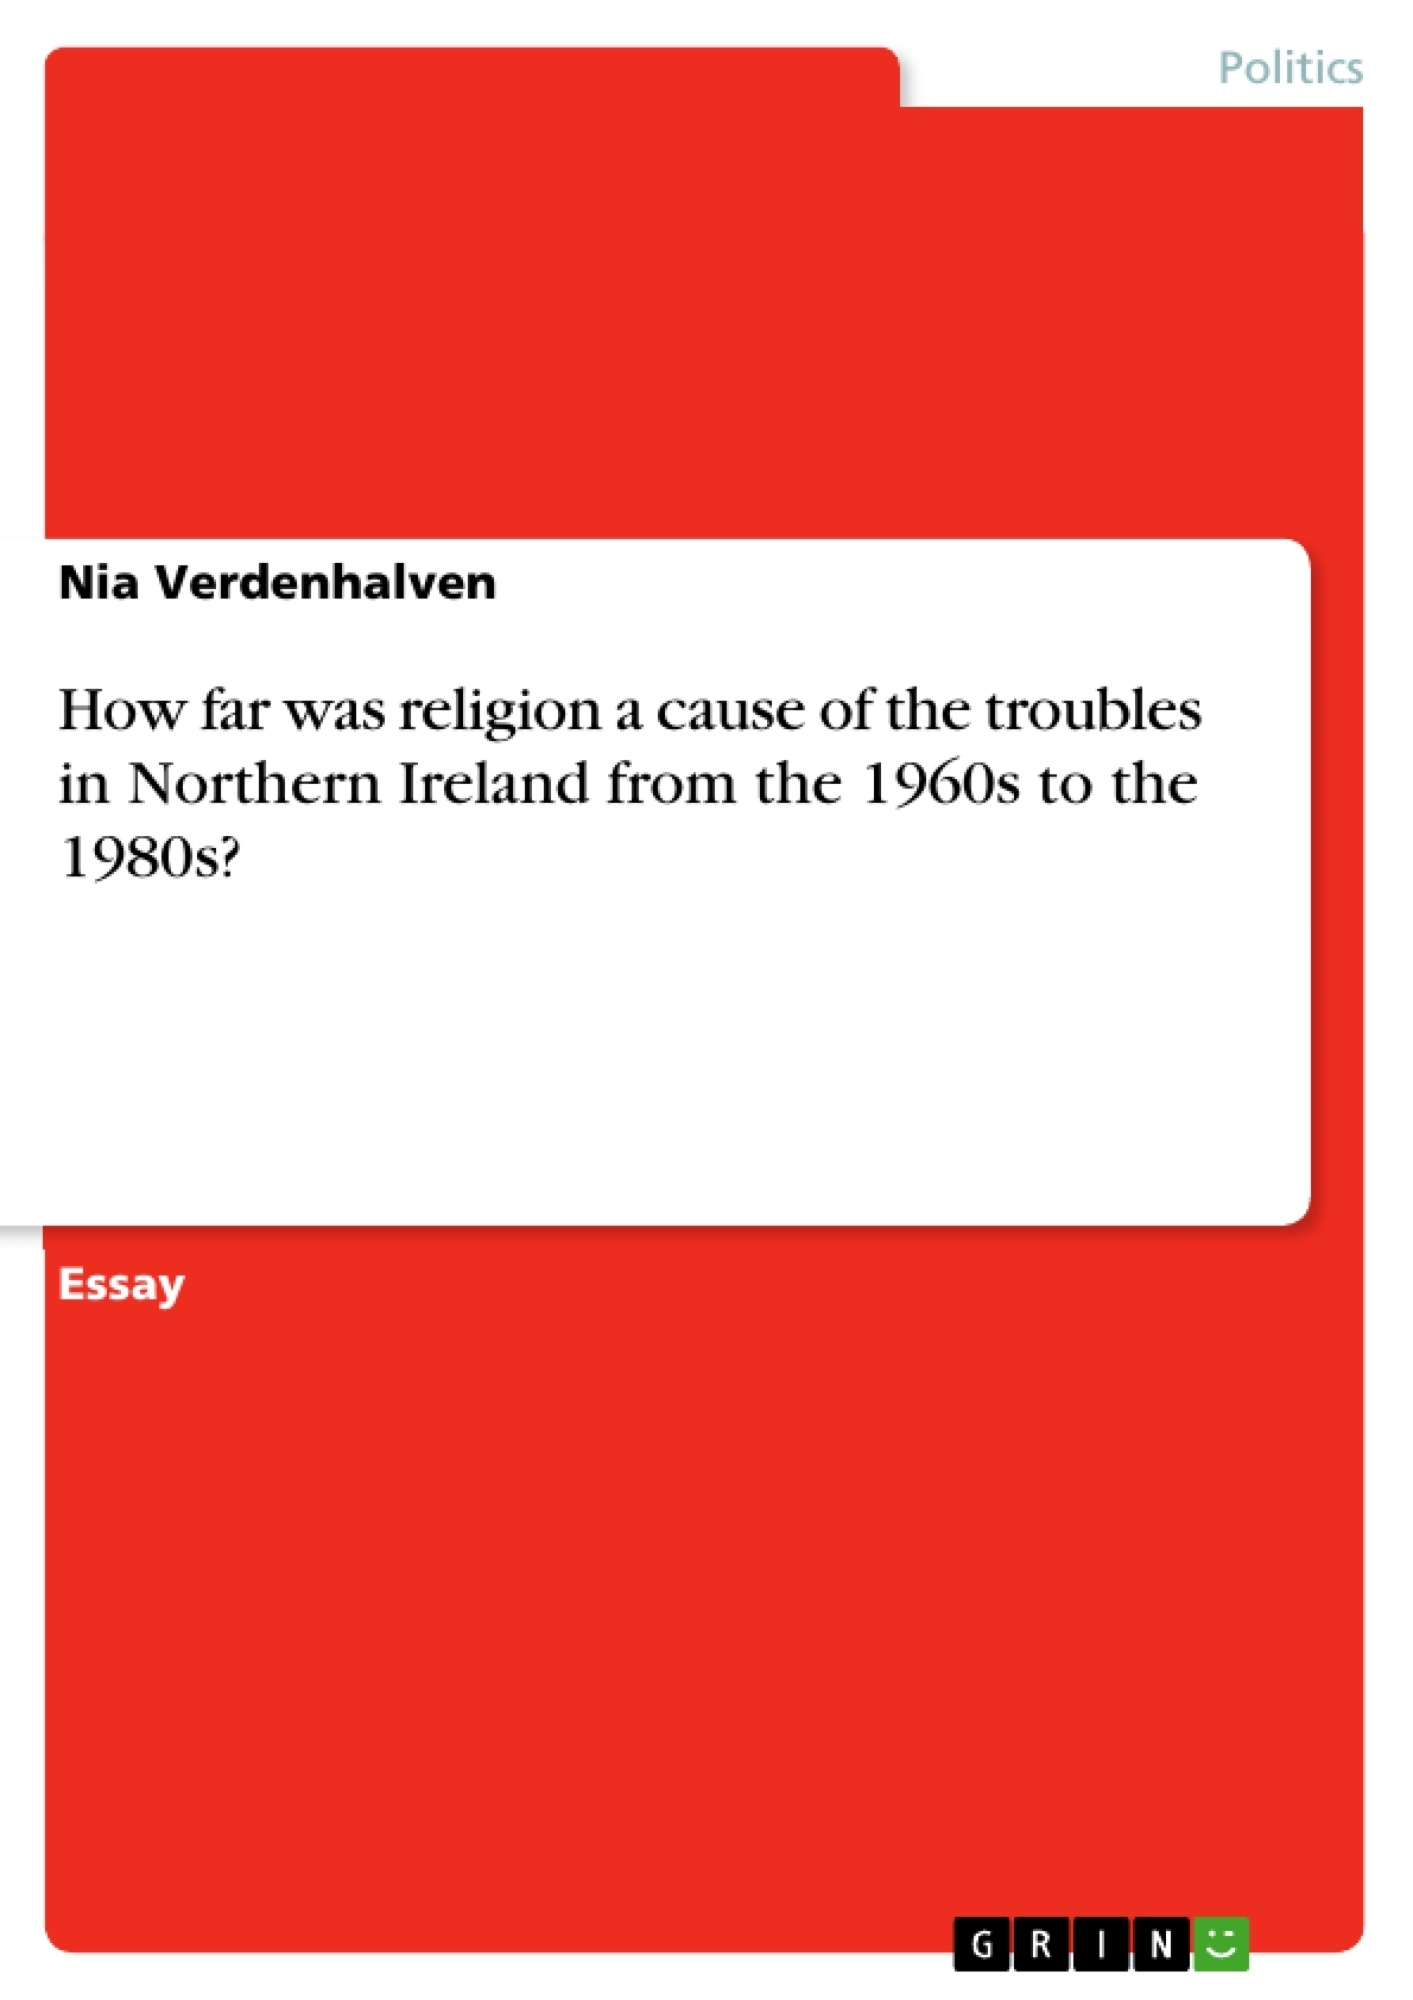 Title: How far was religion a cause of the troubles in Northern Ireland from the 1960s to the 1980s?